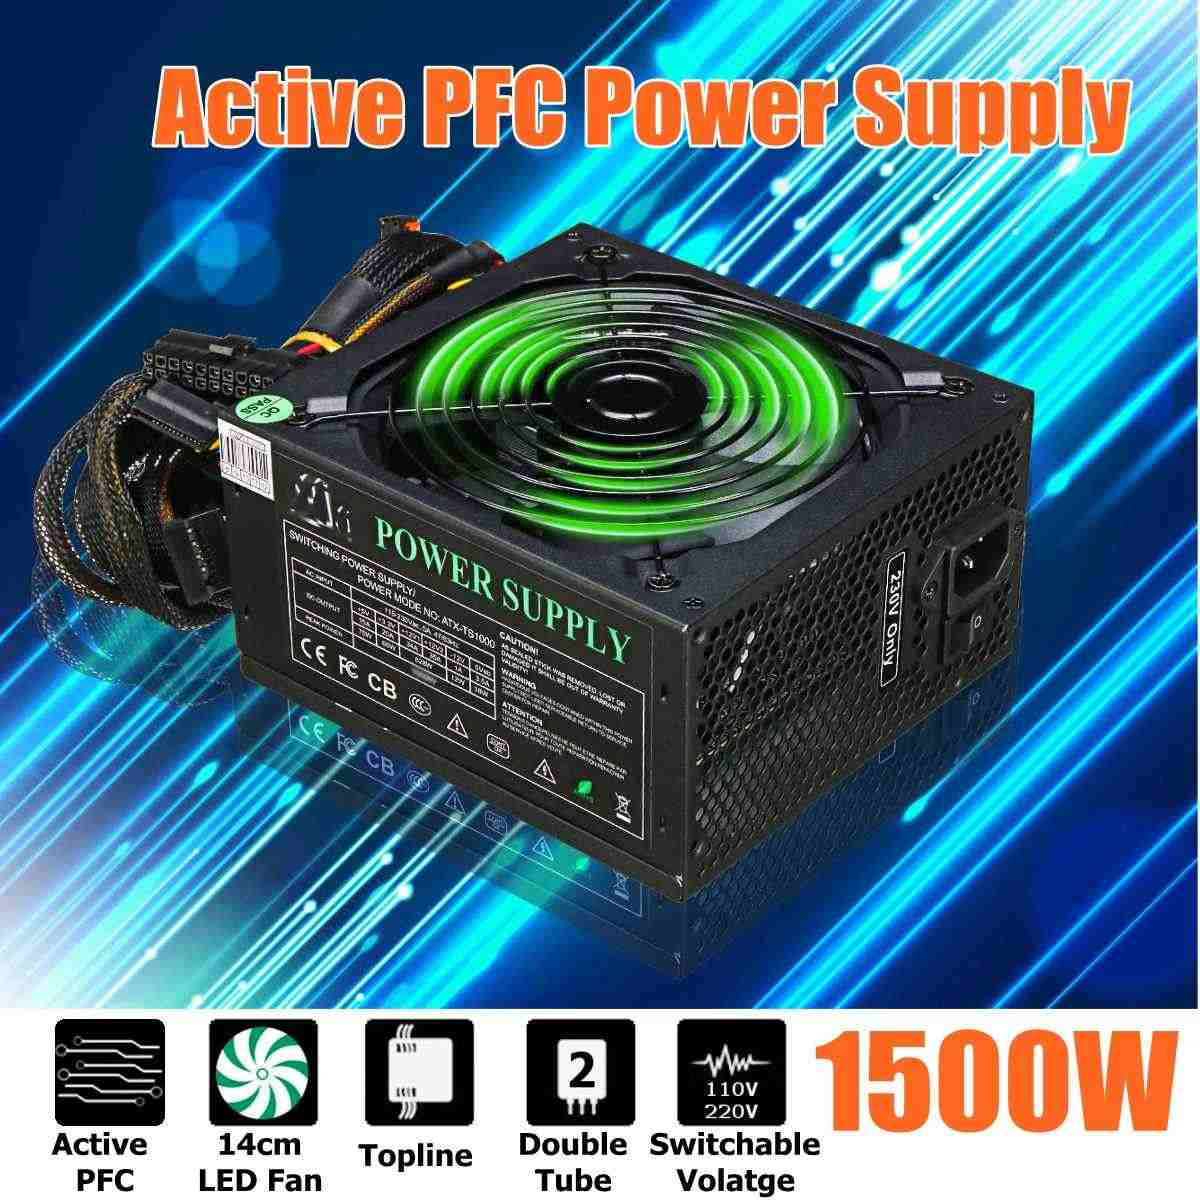 LEORY 1500W PC alimentation PSU actif PFC 24Pin SATA LED hydraulique 140mm ventilateur 80 Plus ordinateur alimentation pour BTC